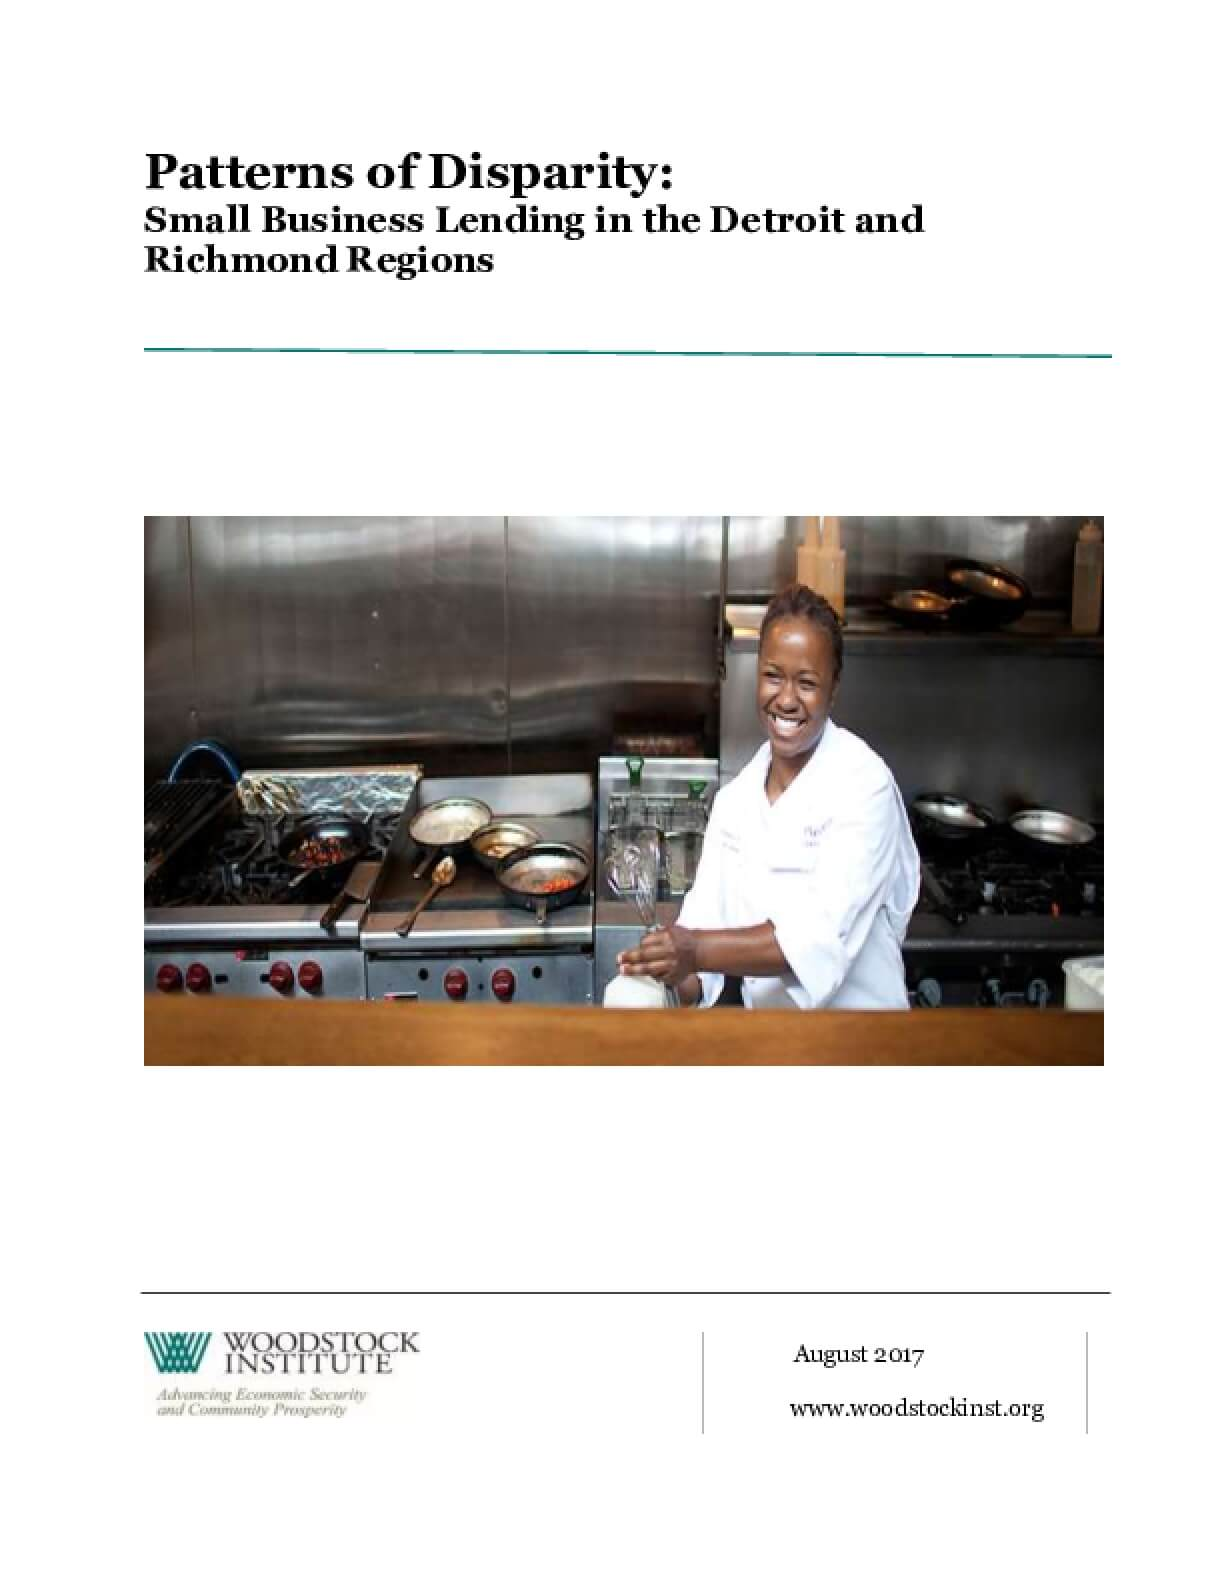 Patterns of Disparity: Small Business Lending in the Detroit and Richmond Regions